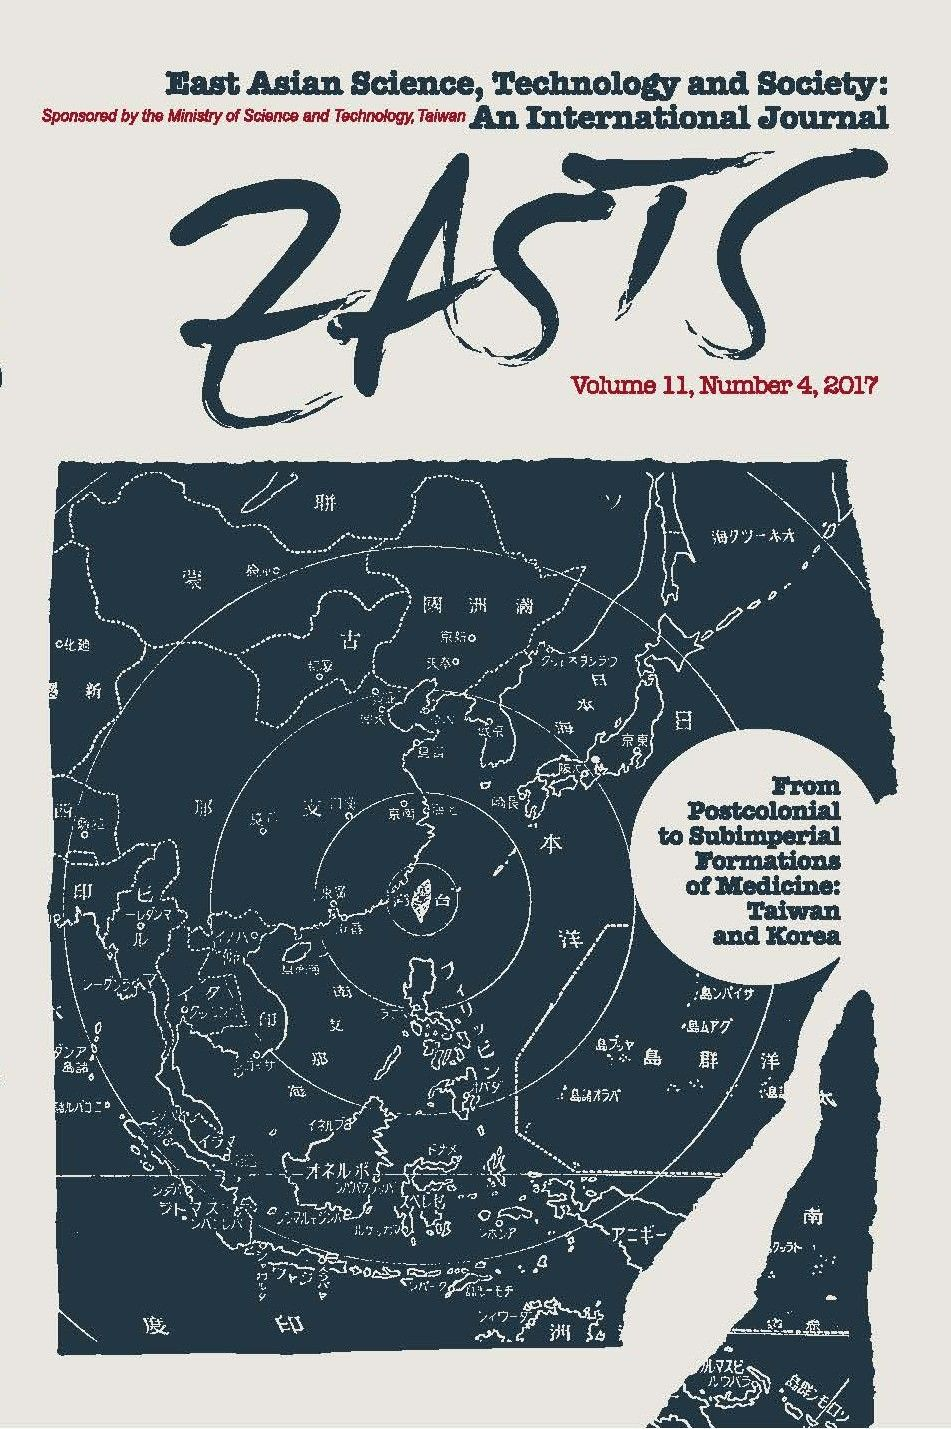 EASTS Cover 11.4